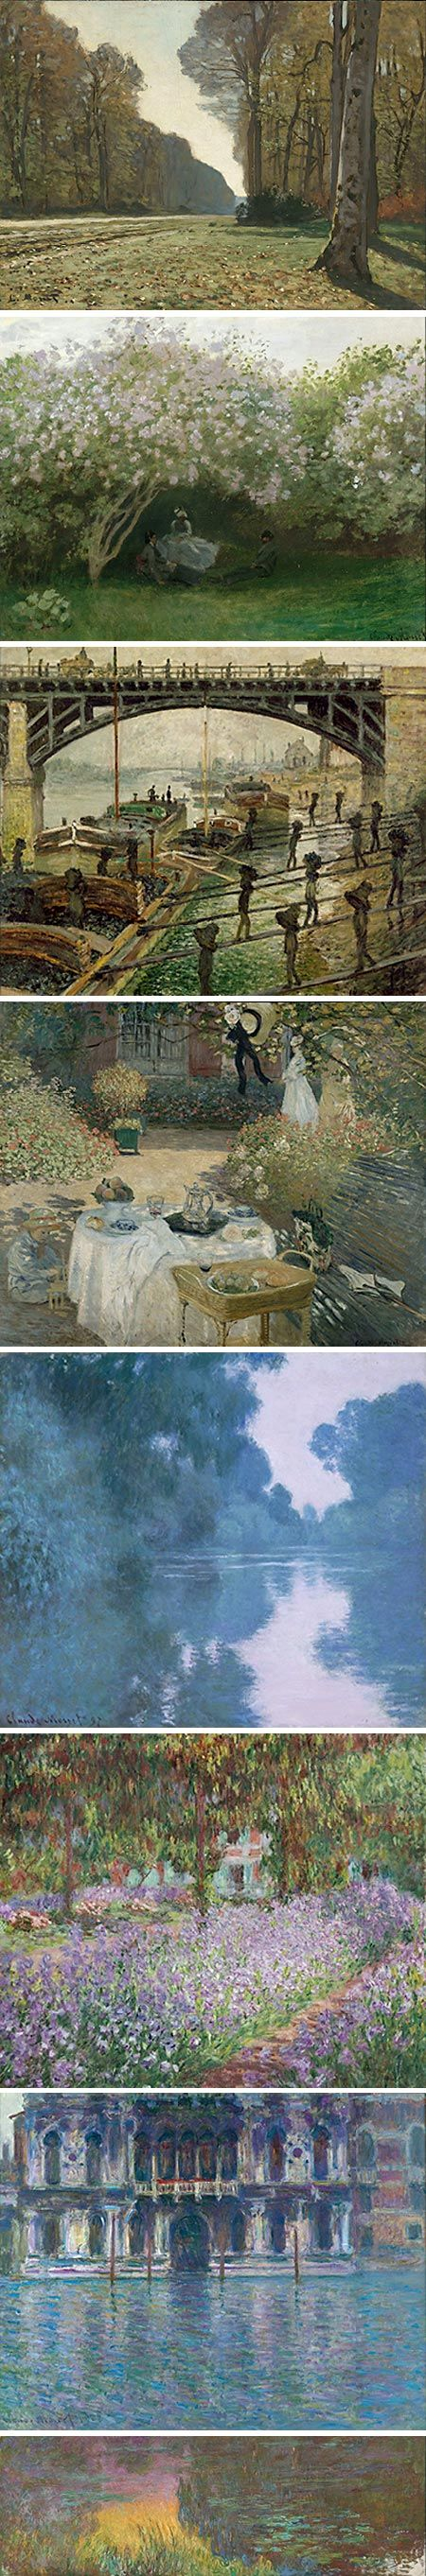 claude monet the man behind the painting Claude monet was born in his criticism of academic painting and his refusal to follow a good art school when the sun, disappearing behind the city.